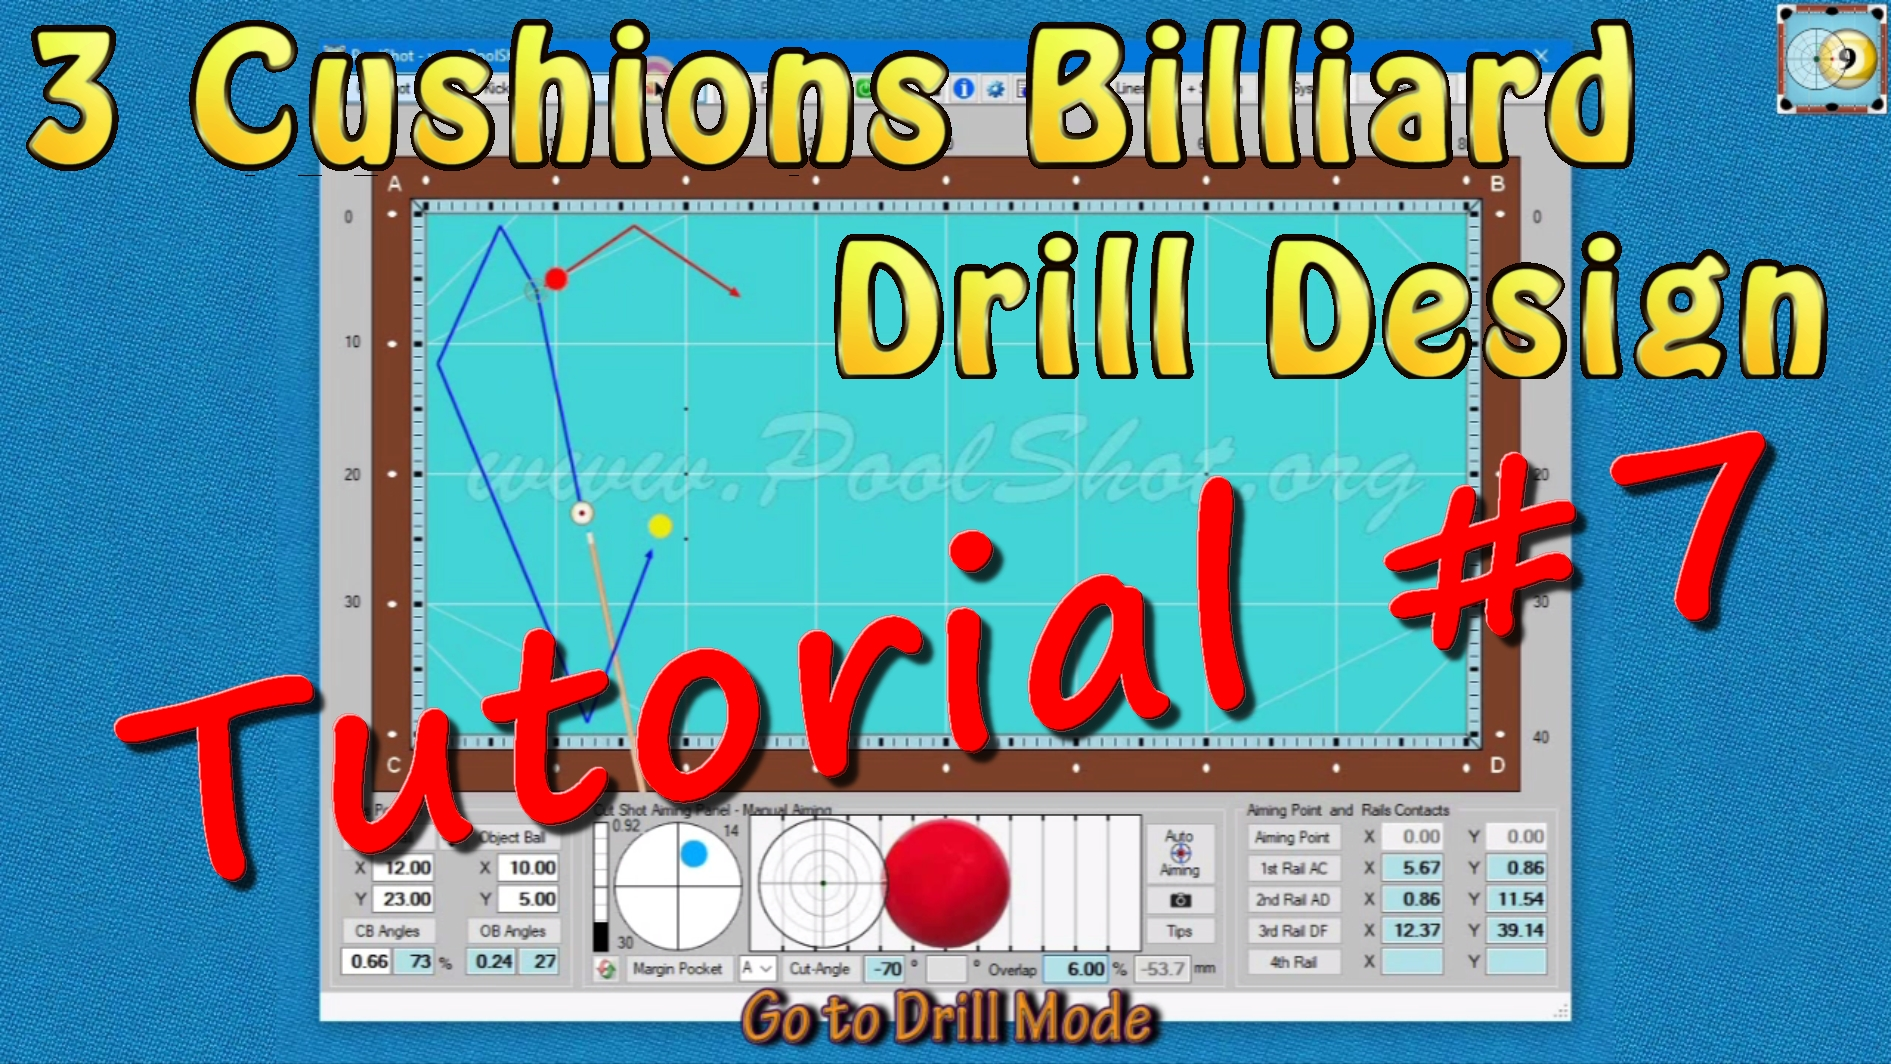 How To Design a 3-Cushions Drill with PoolShot Software